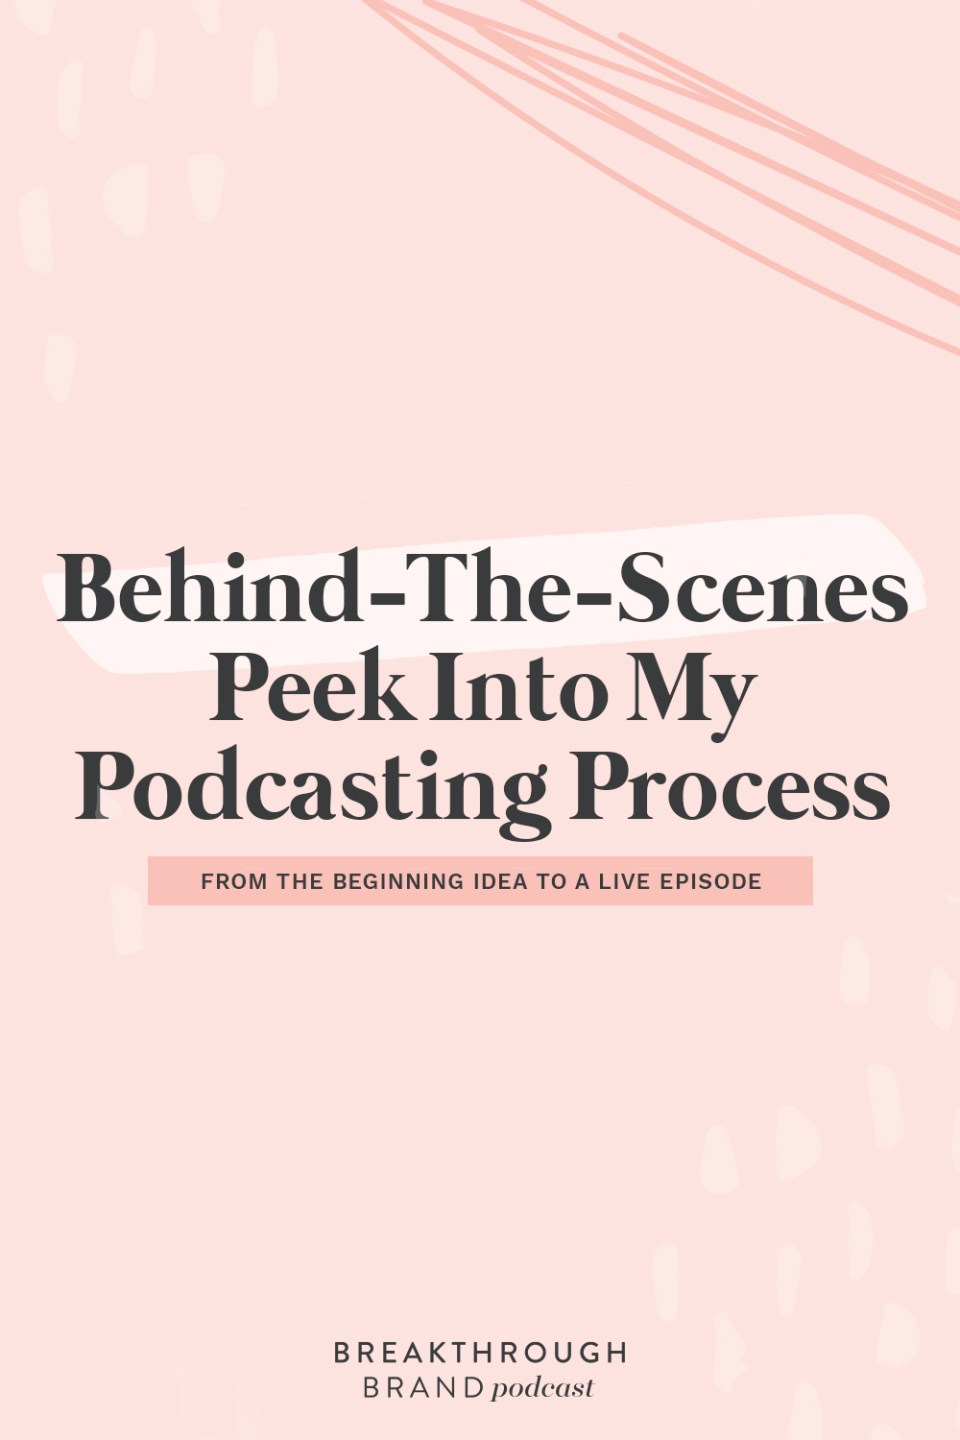 Take a look behind-the-scenes into my podcasing process on The Breakthrough Brand Podcast.